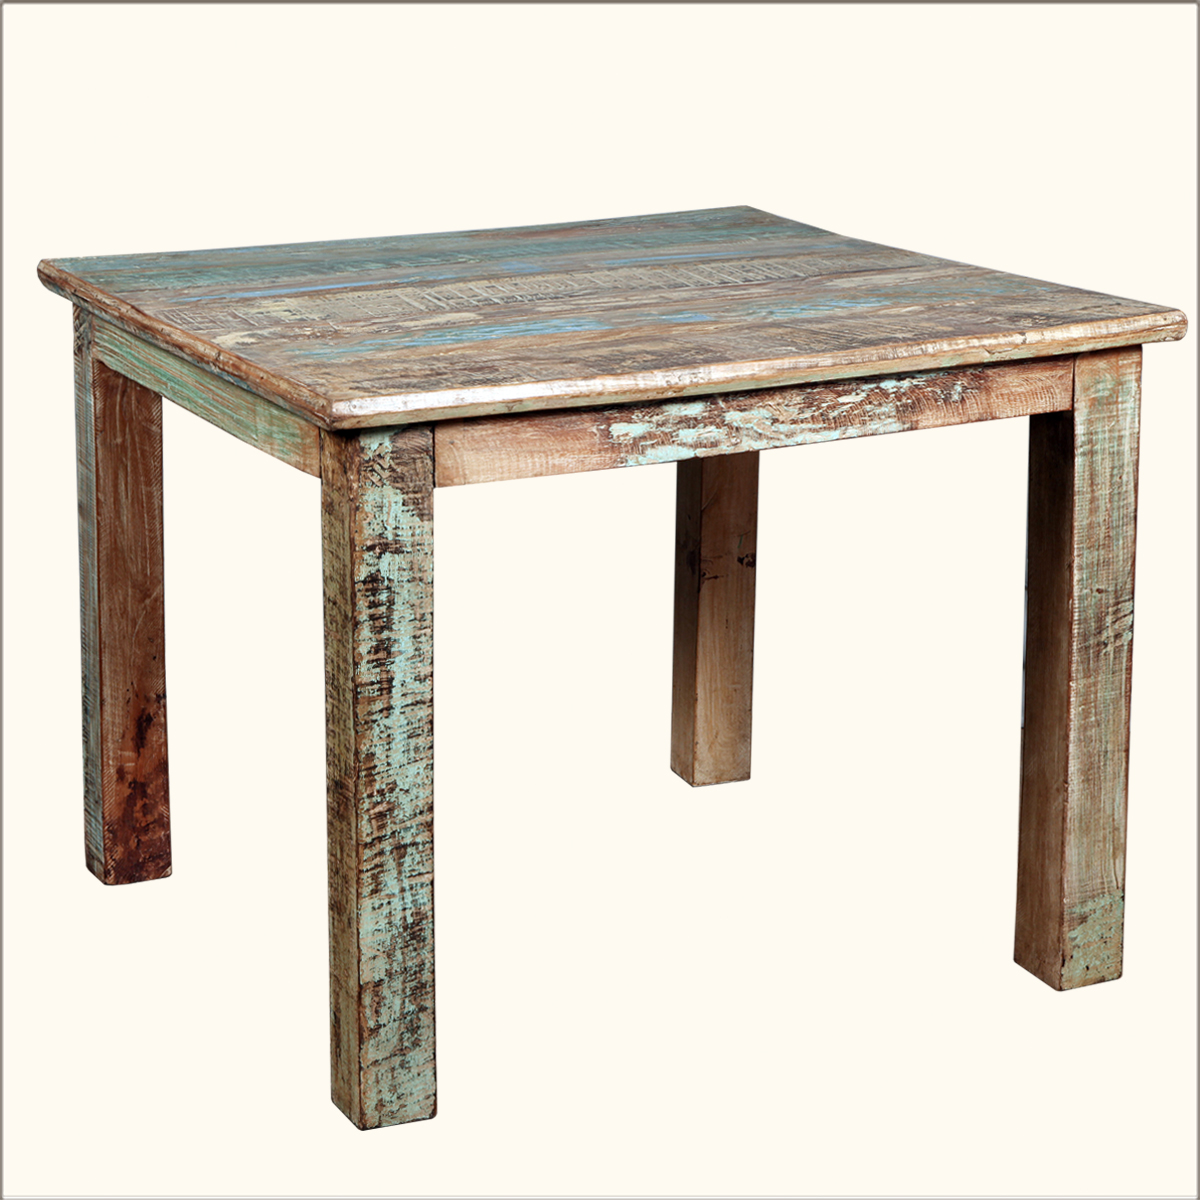 Rustic reclaimed wood distressed 40 square kitchen dining Rustic wood dining table